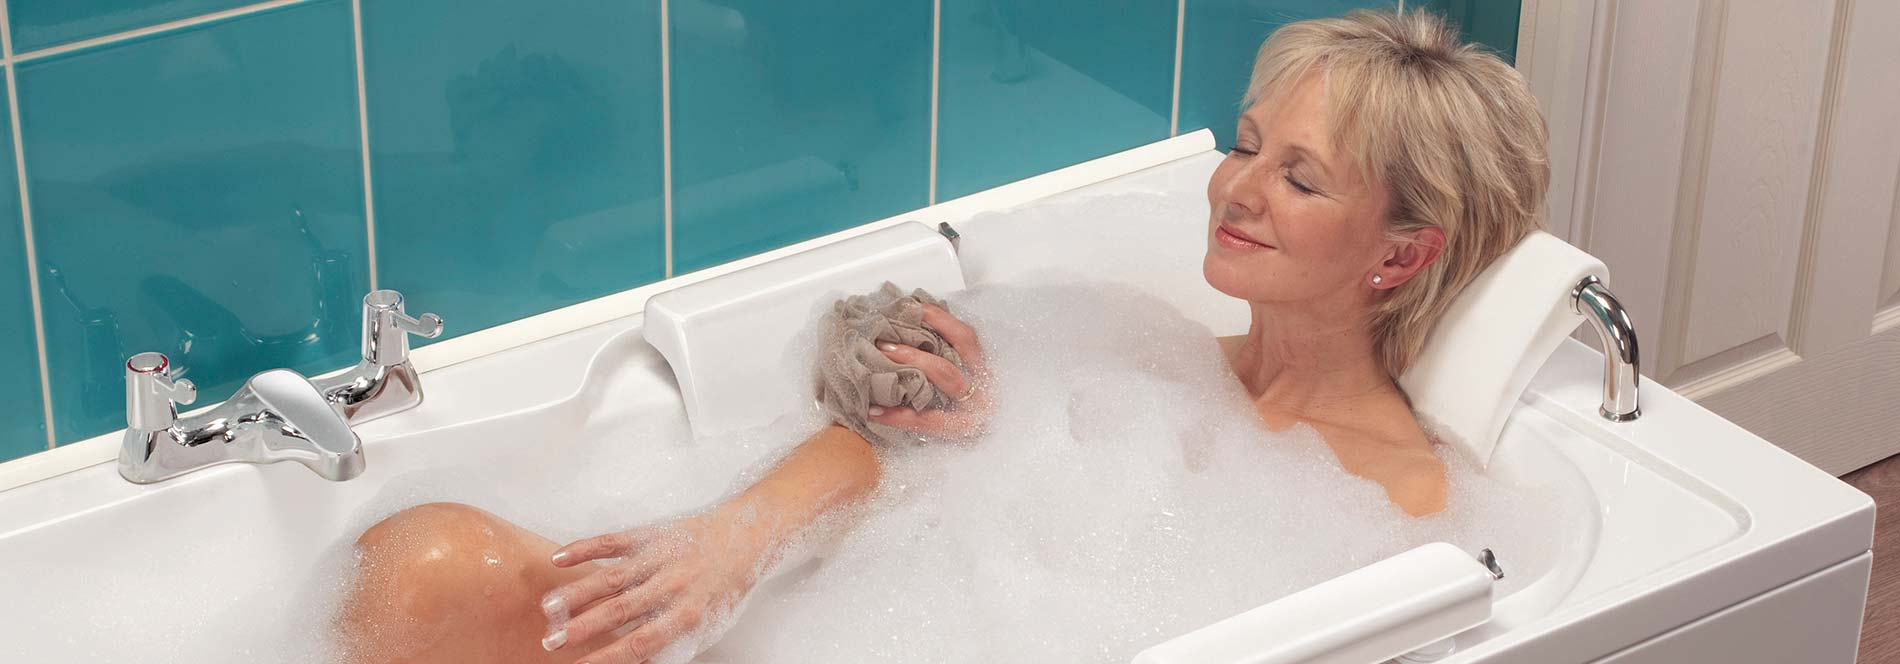 walk in baths, shower bath for disabled and elderly